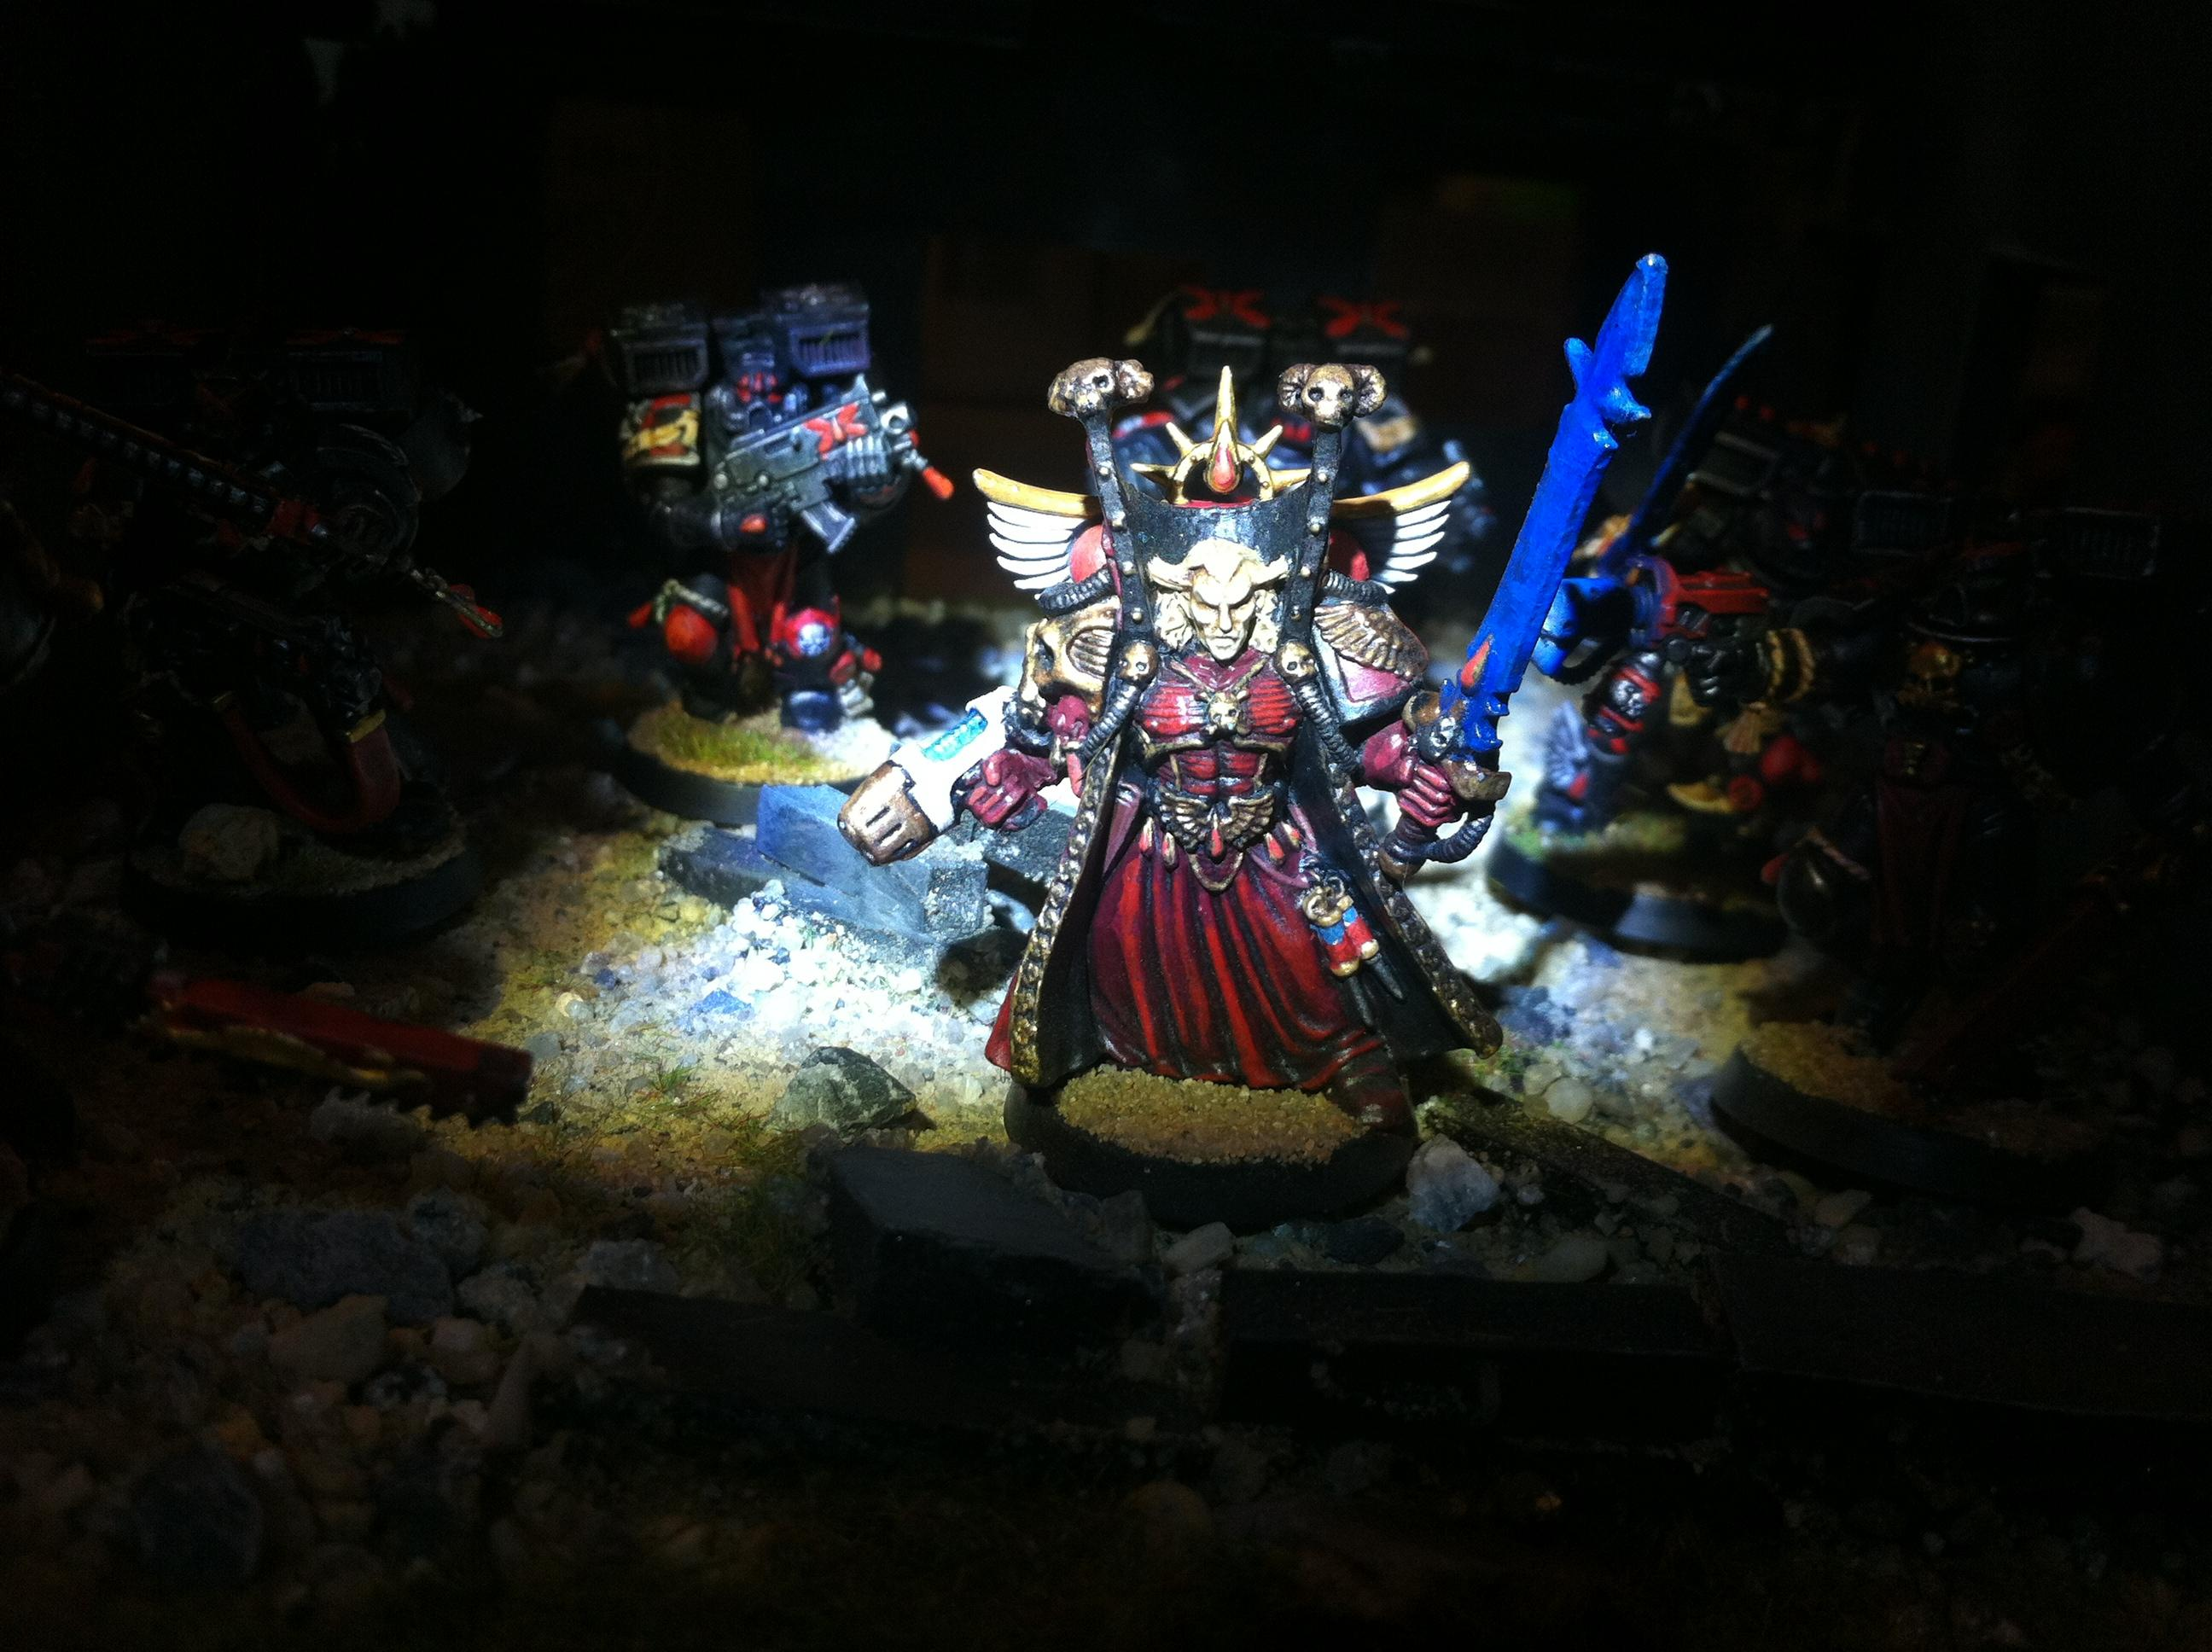 Angels Sanguine, Blood Angels, Dreadnought, Furioso, Mephiston, Sanguine, Space Marines, Warhammer 40,000